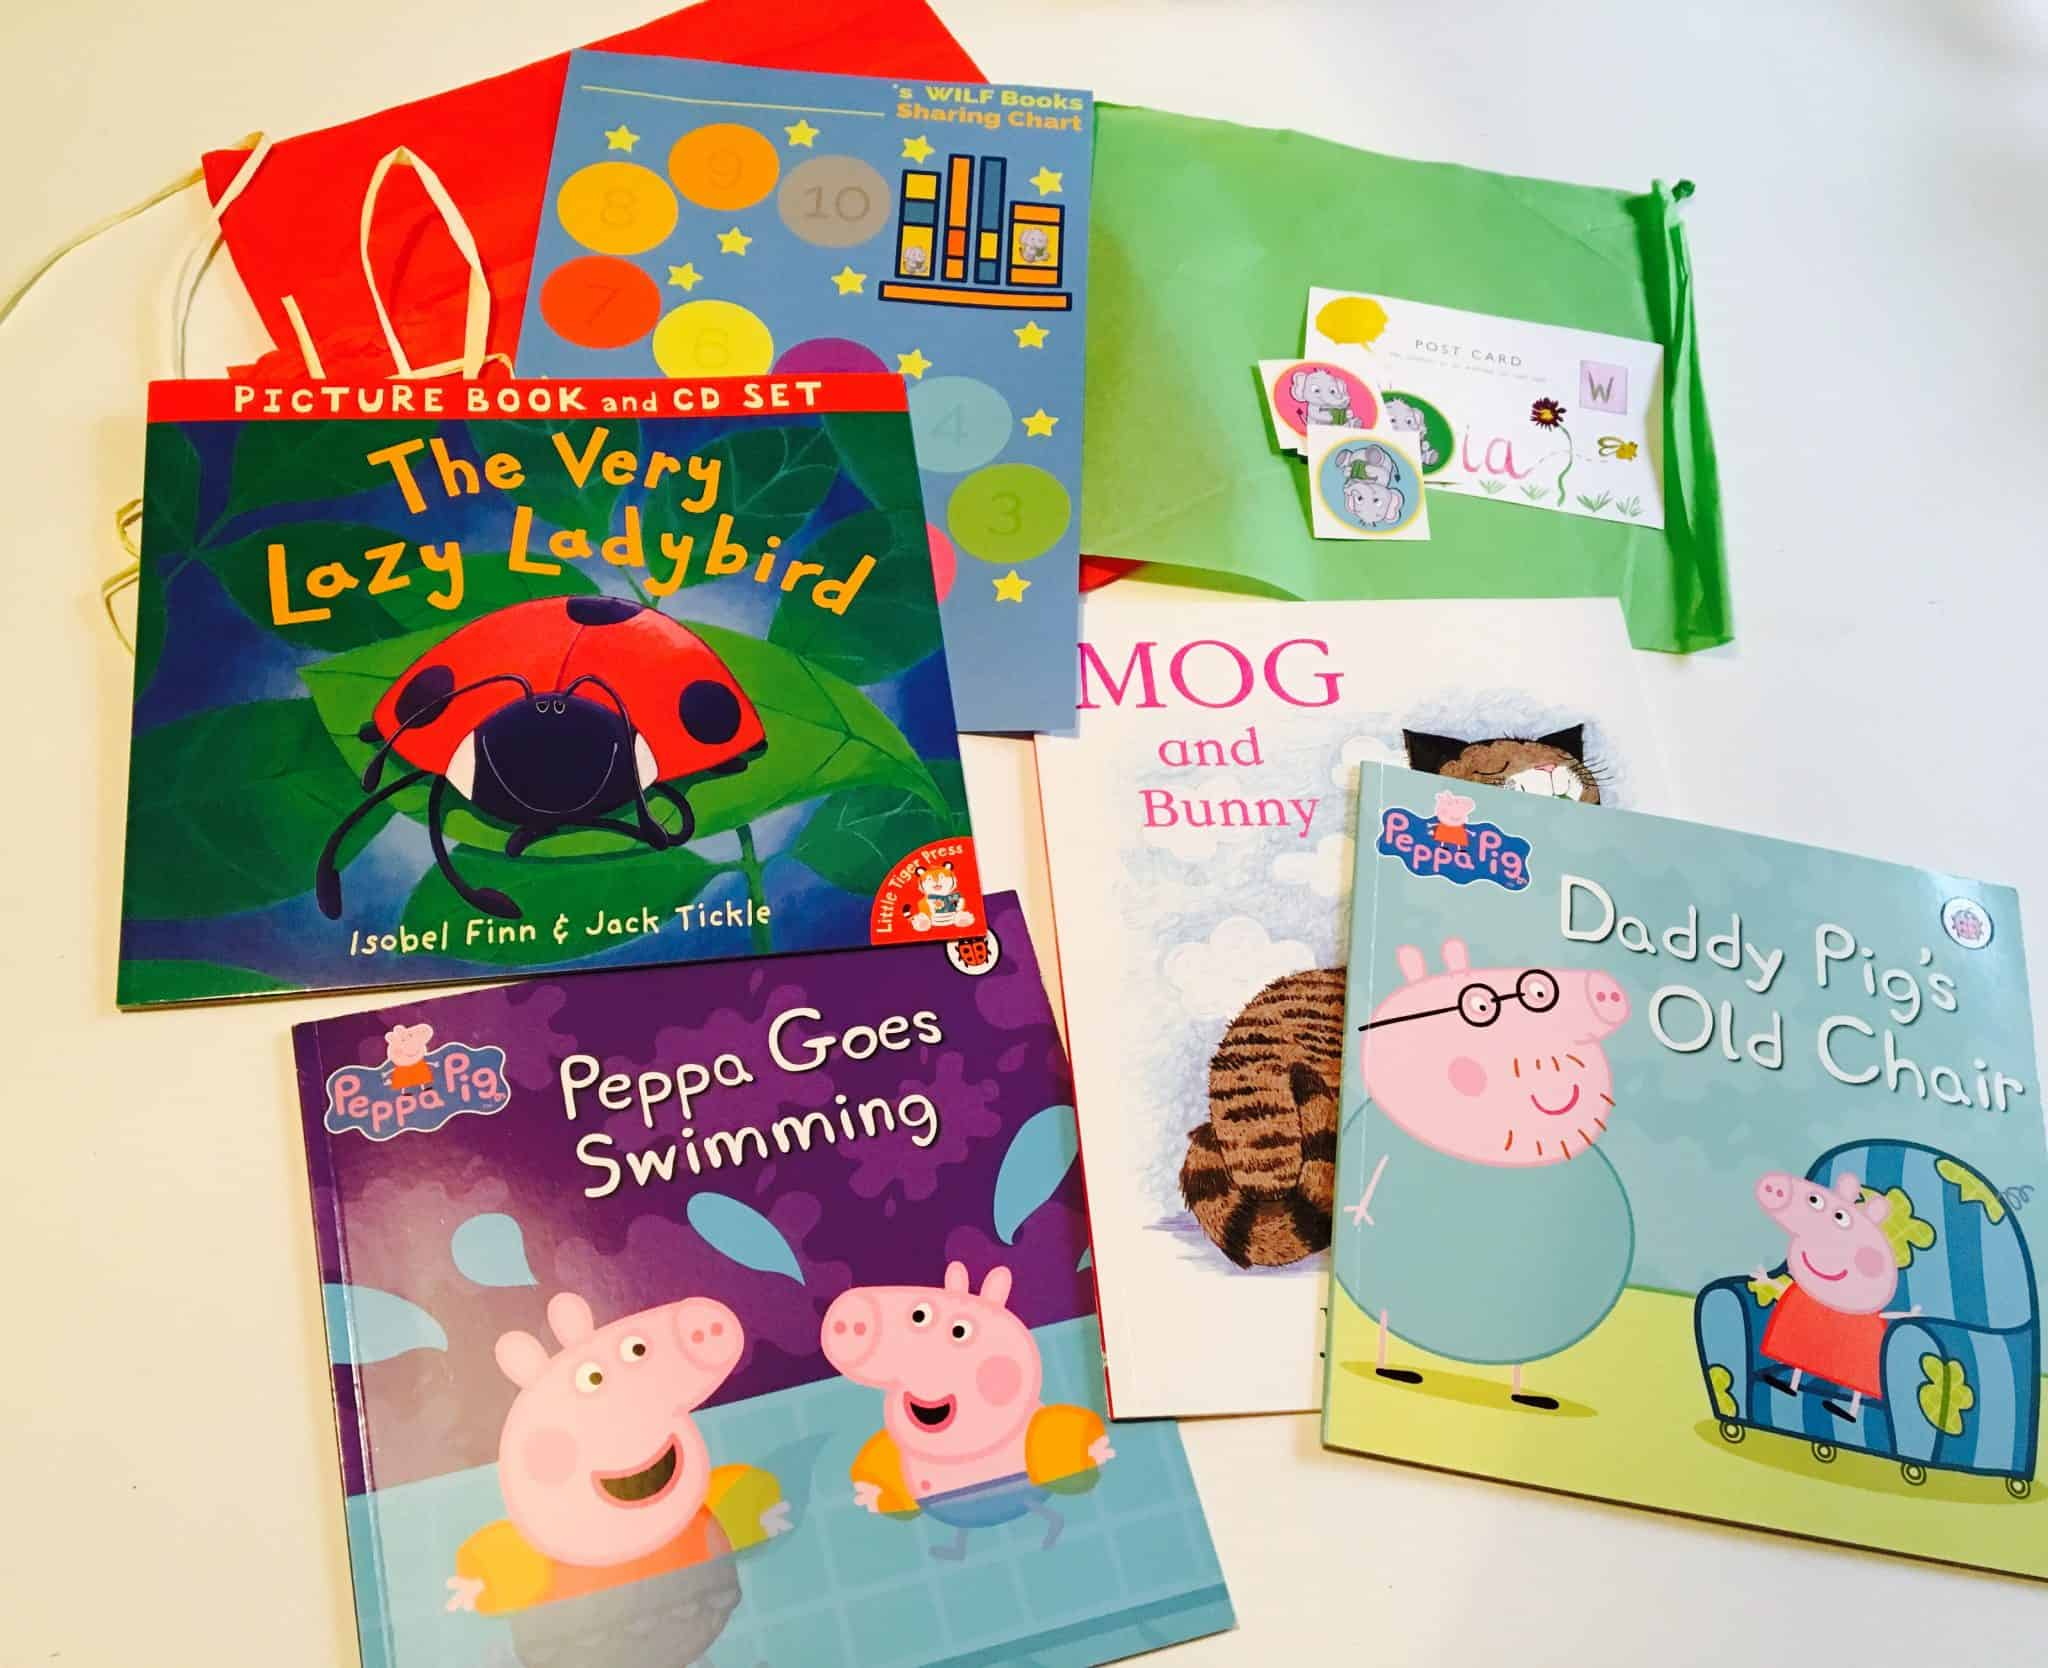 Books in the Wilf monthly books subscription